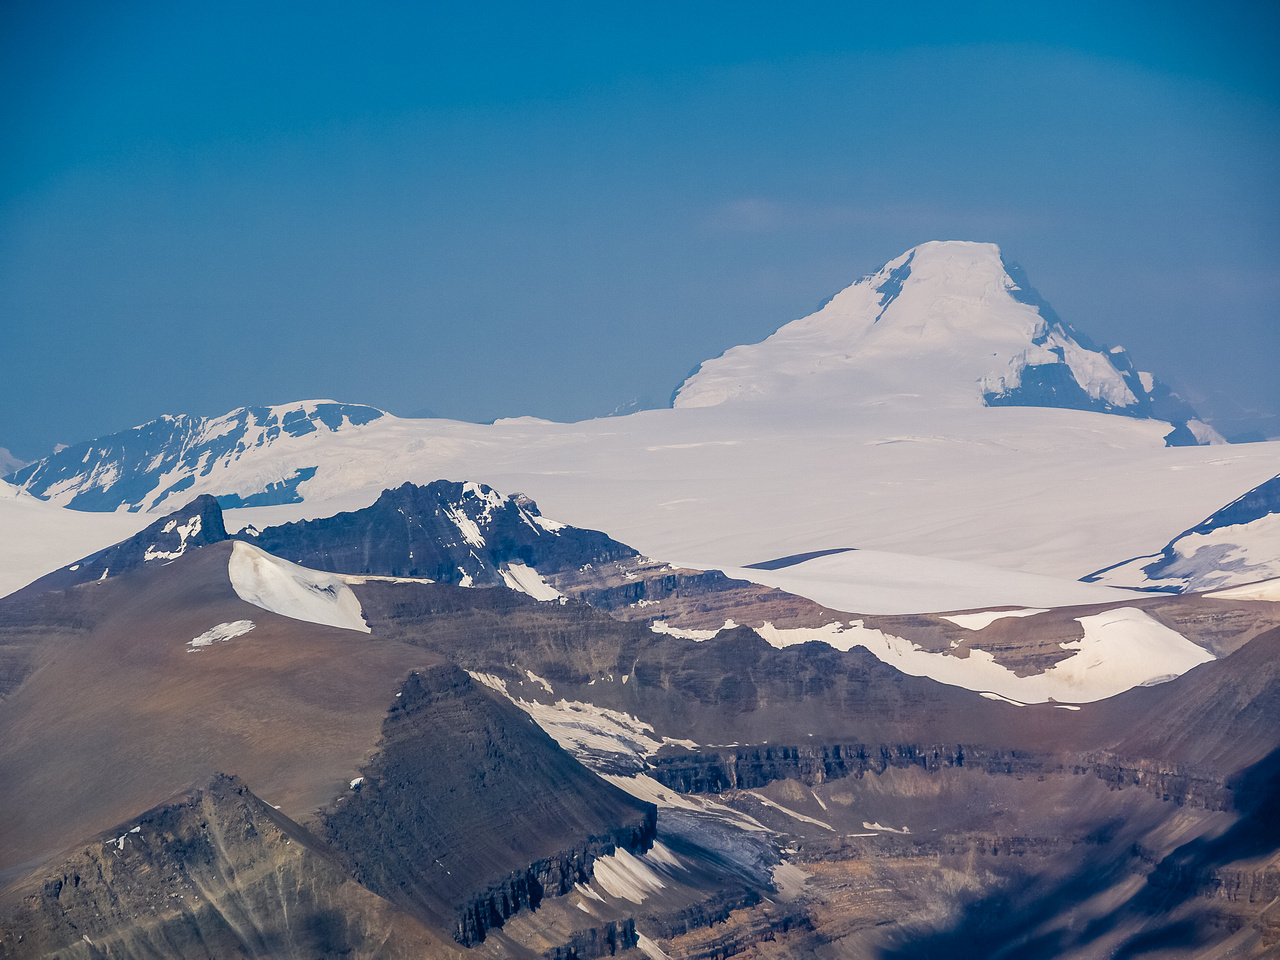 Incredible view of Alberta's highest mountain, Mount Columbia, which I finally summitted in 2015.